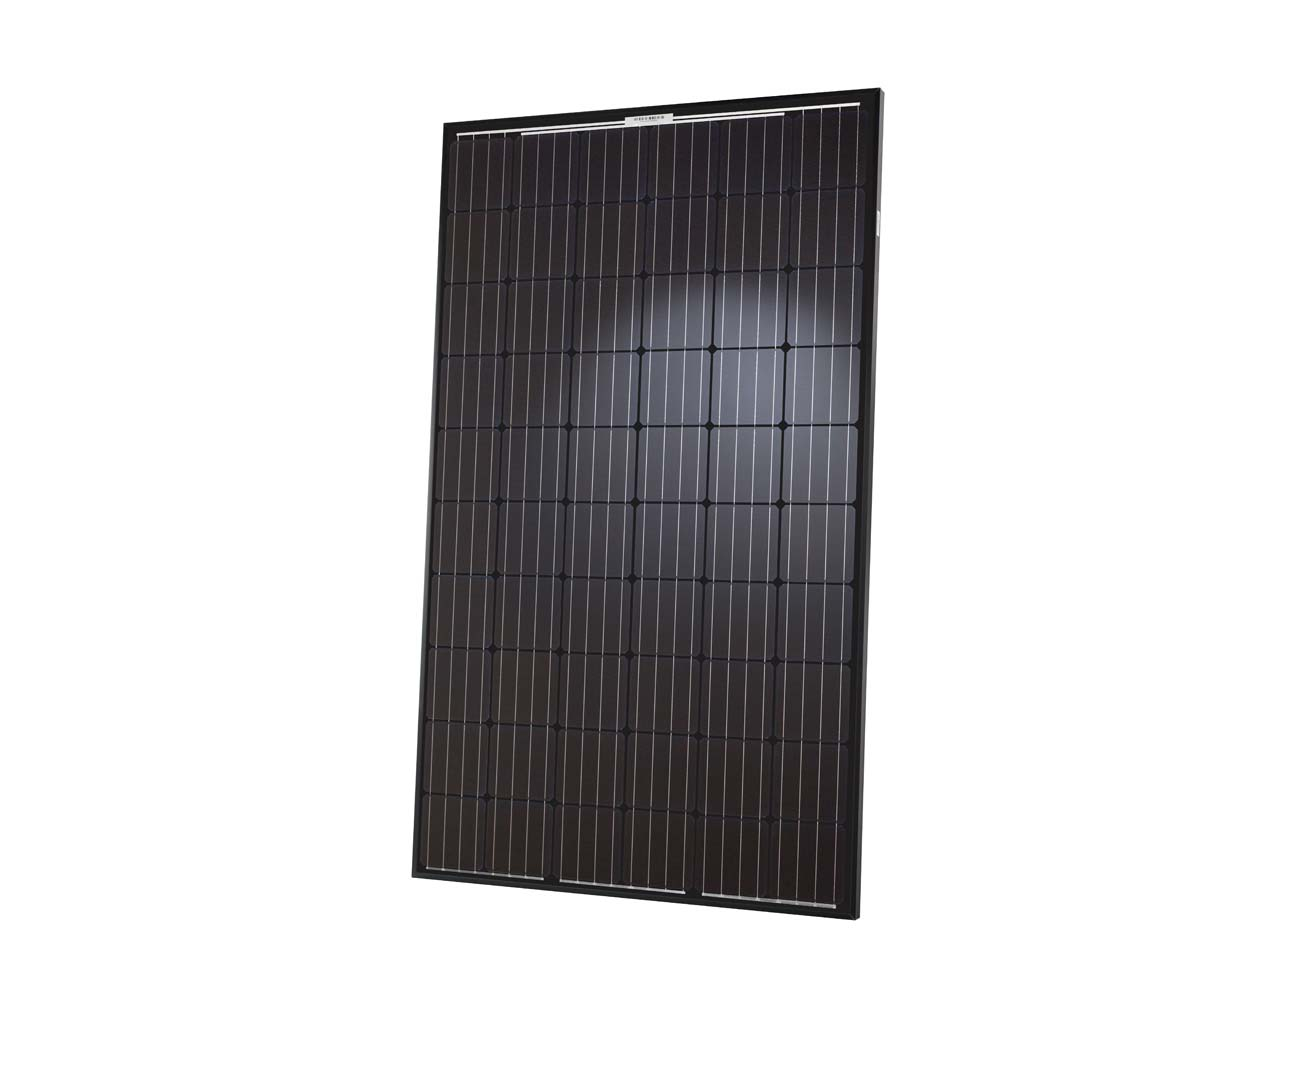 The introduction of mono PERC modules is a major move by Hanwha Q CELLS.